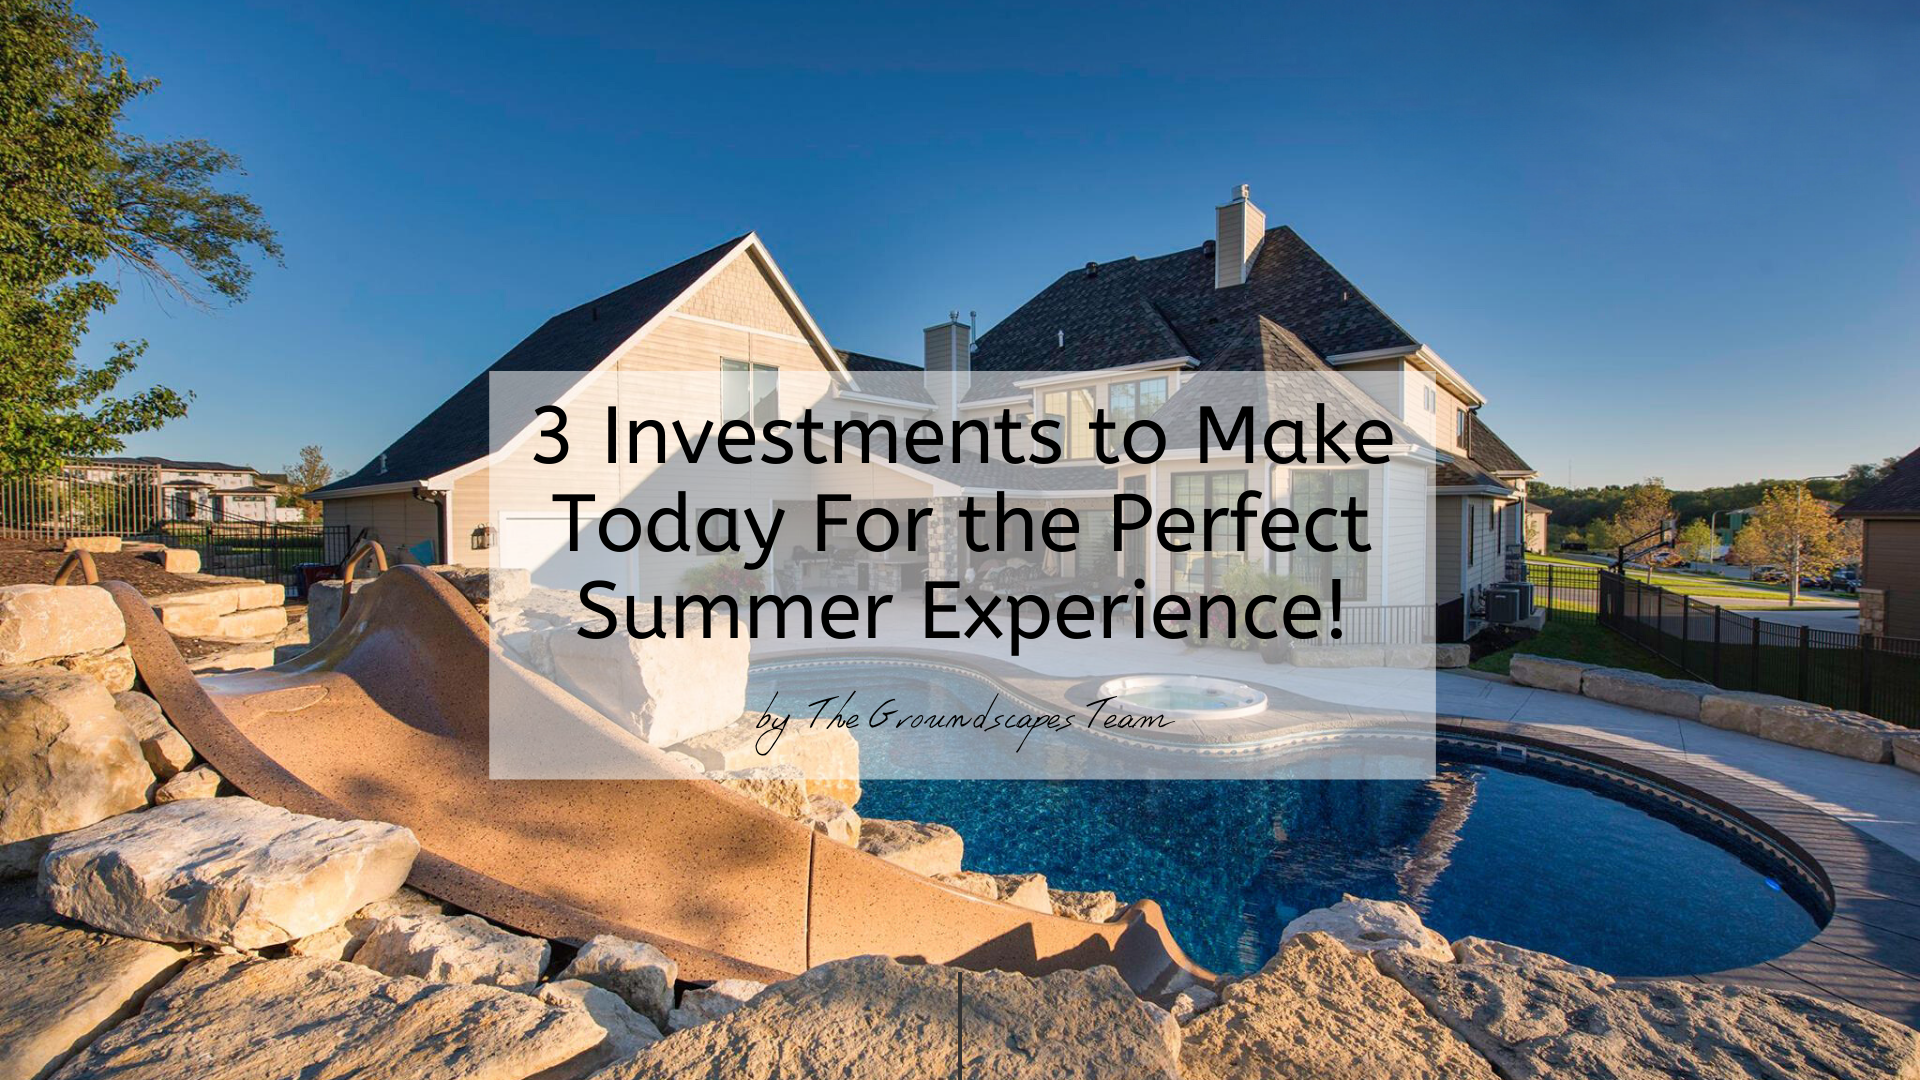 3 Investments to Make Today For the Perfect Summer Experience!